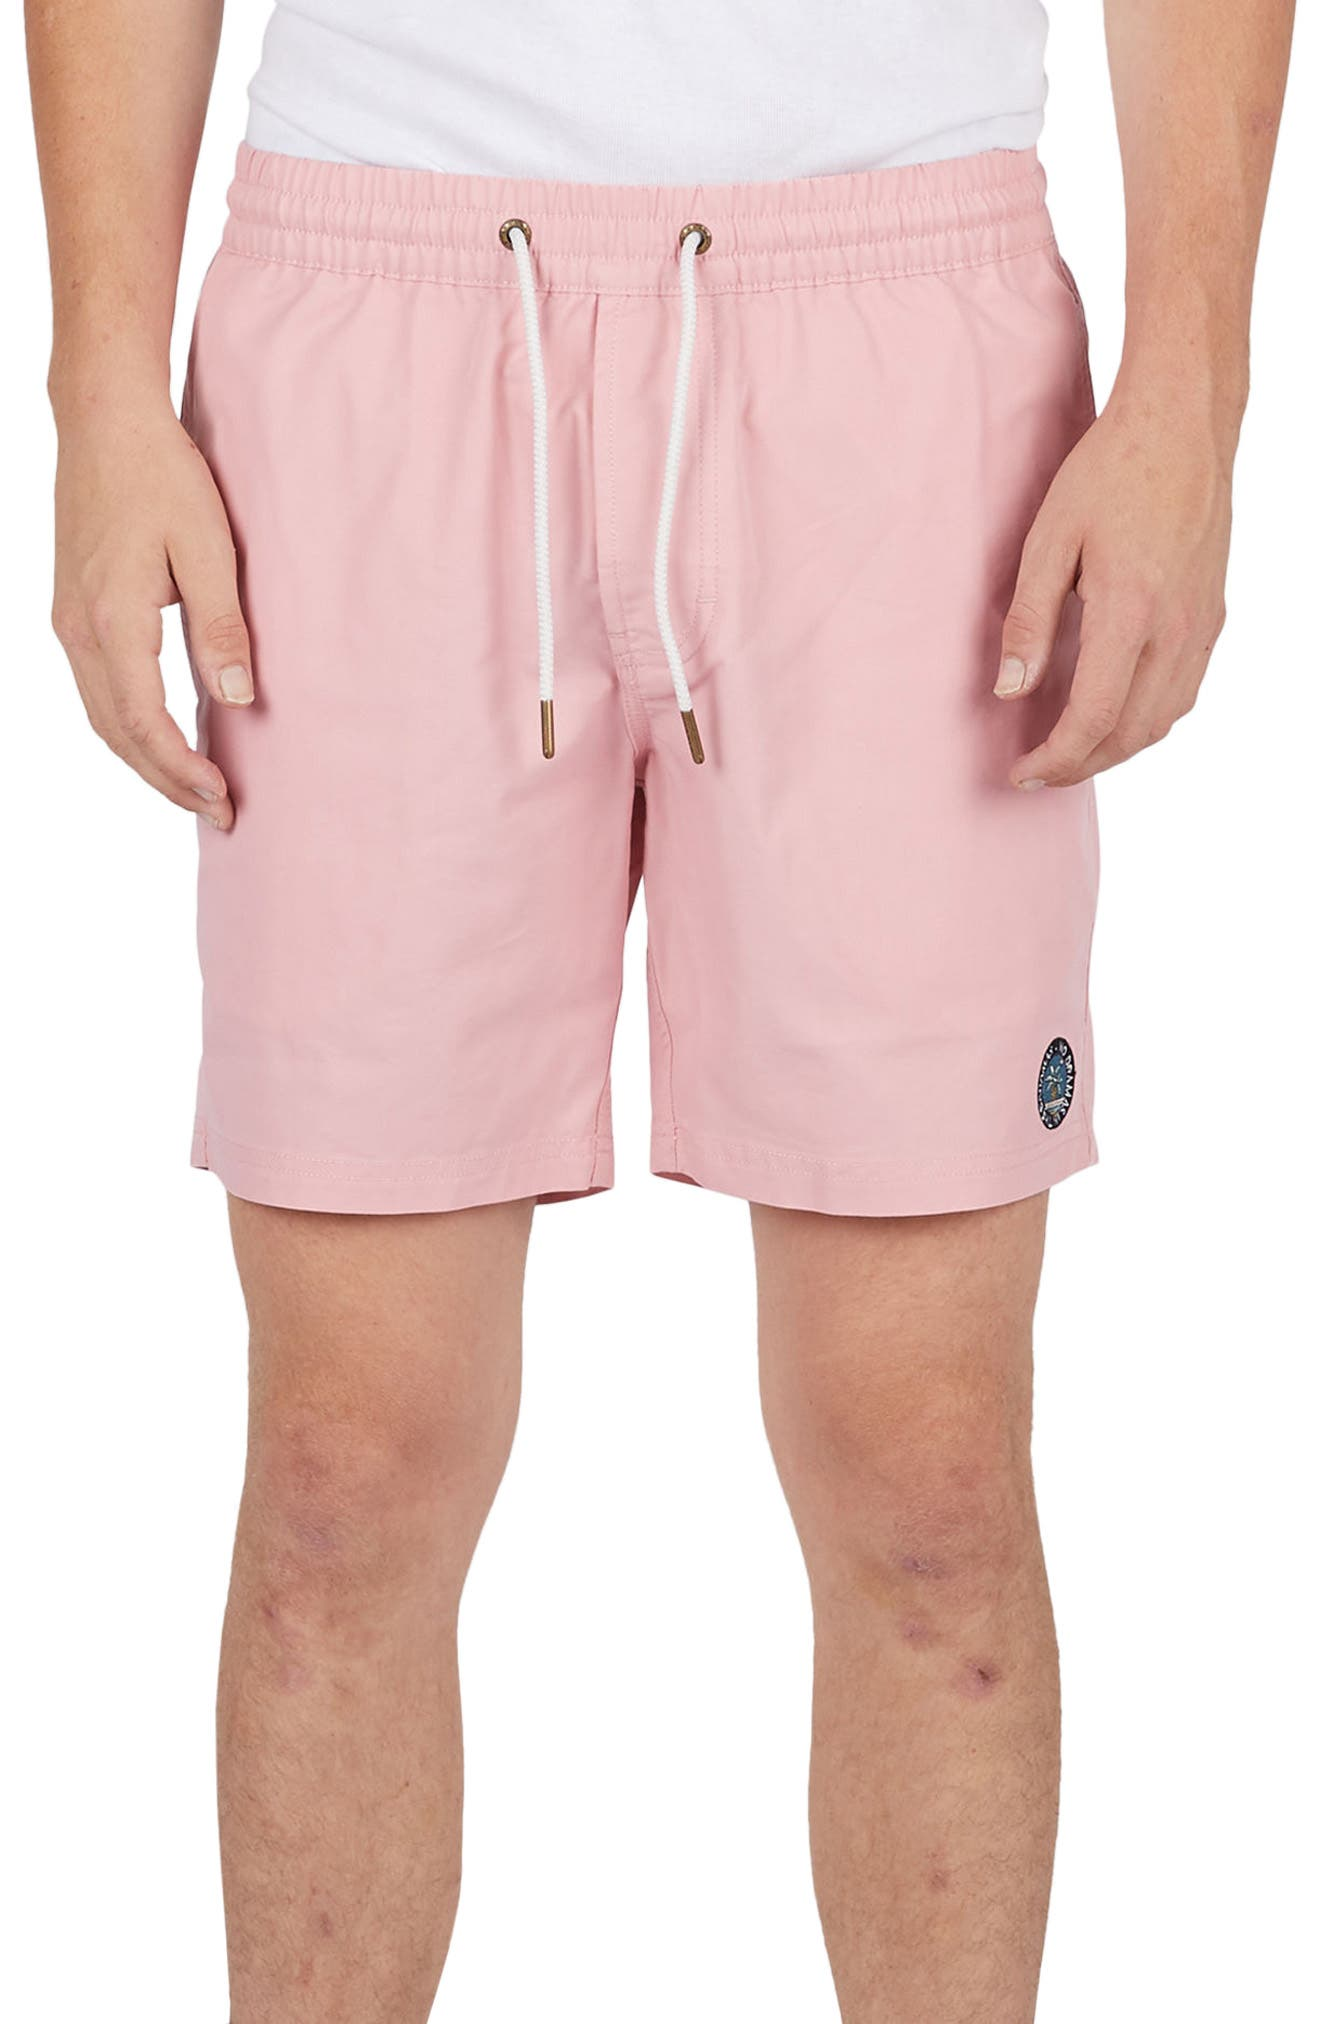 Amphibious Shorts,                         Main,                         color, 661